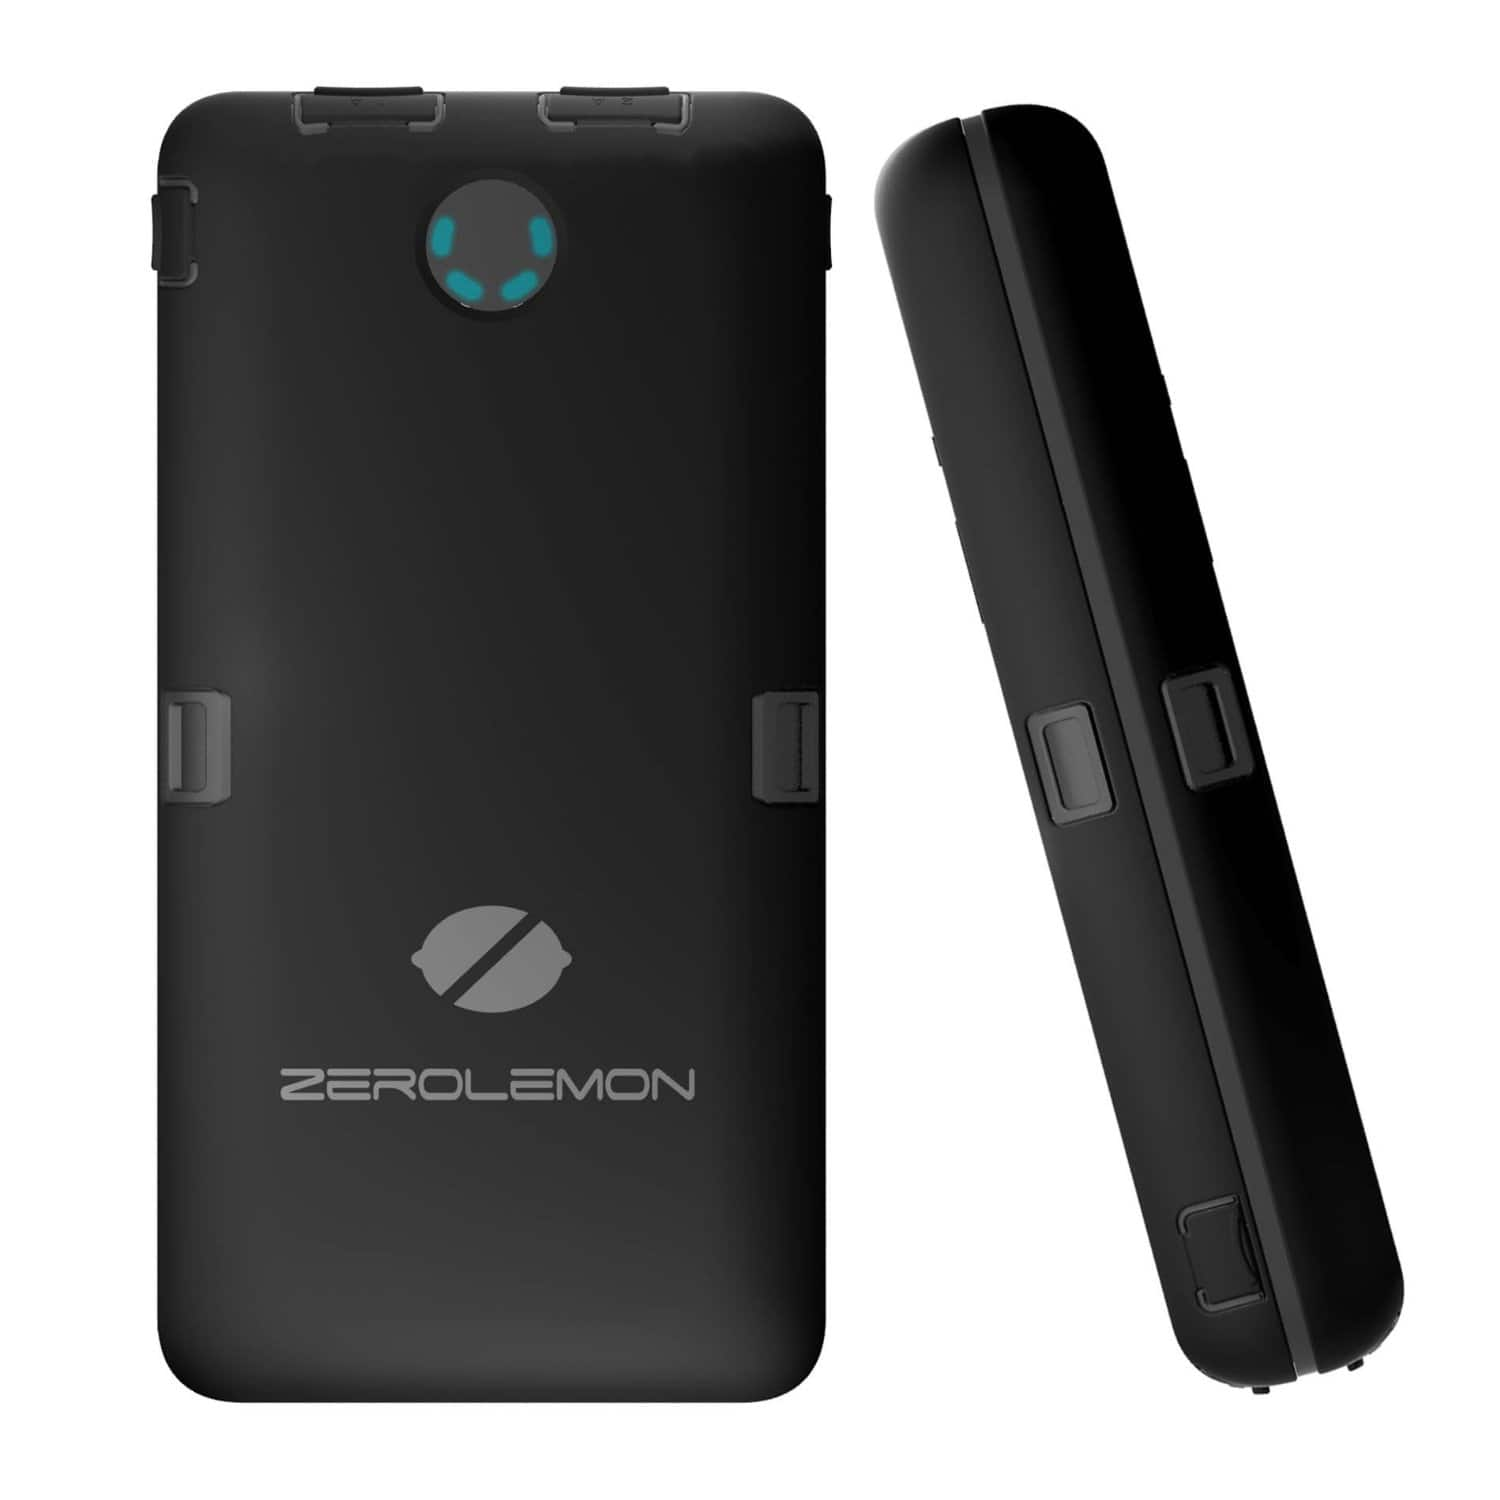 ZeroLemon ToughJuice 30,000mAh Rugged External Battery Pack  $30 + Free Shipping